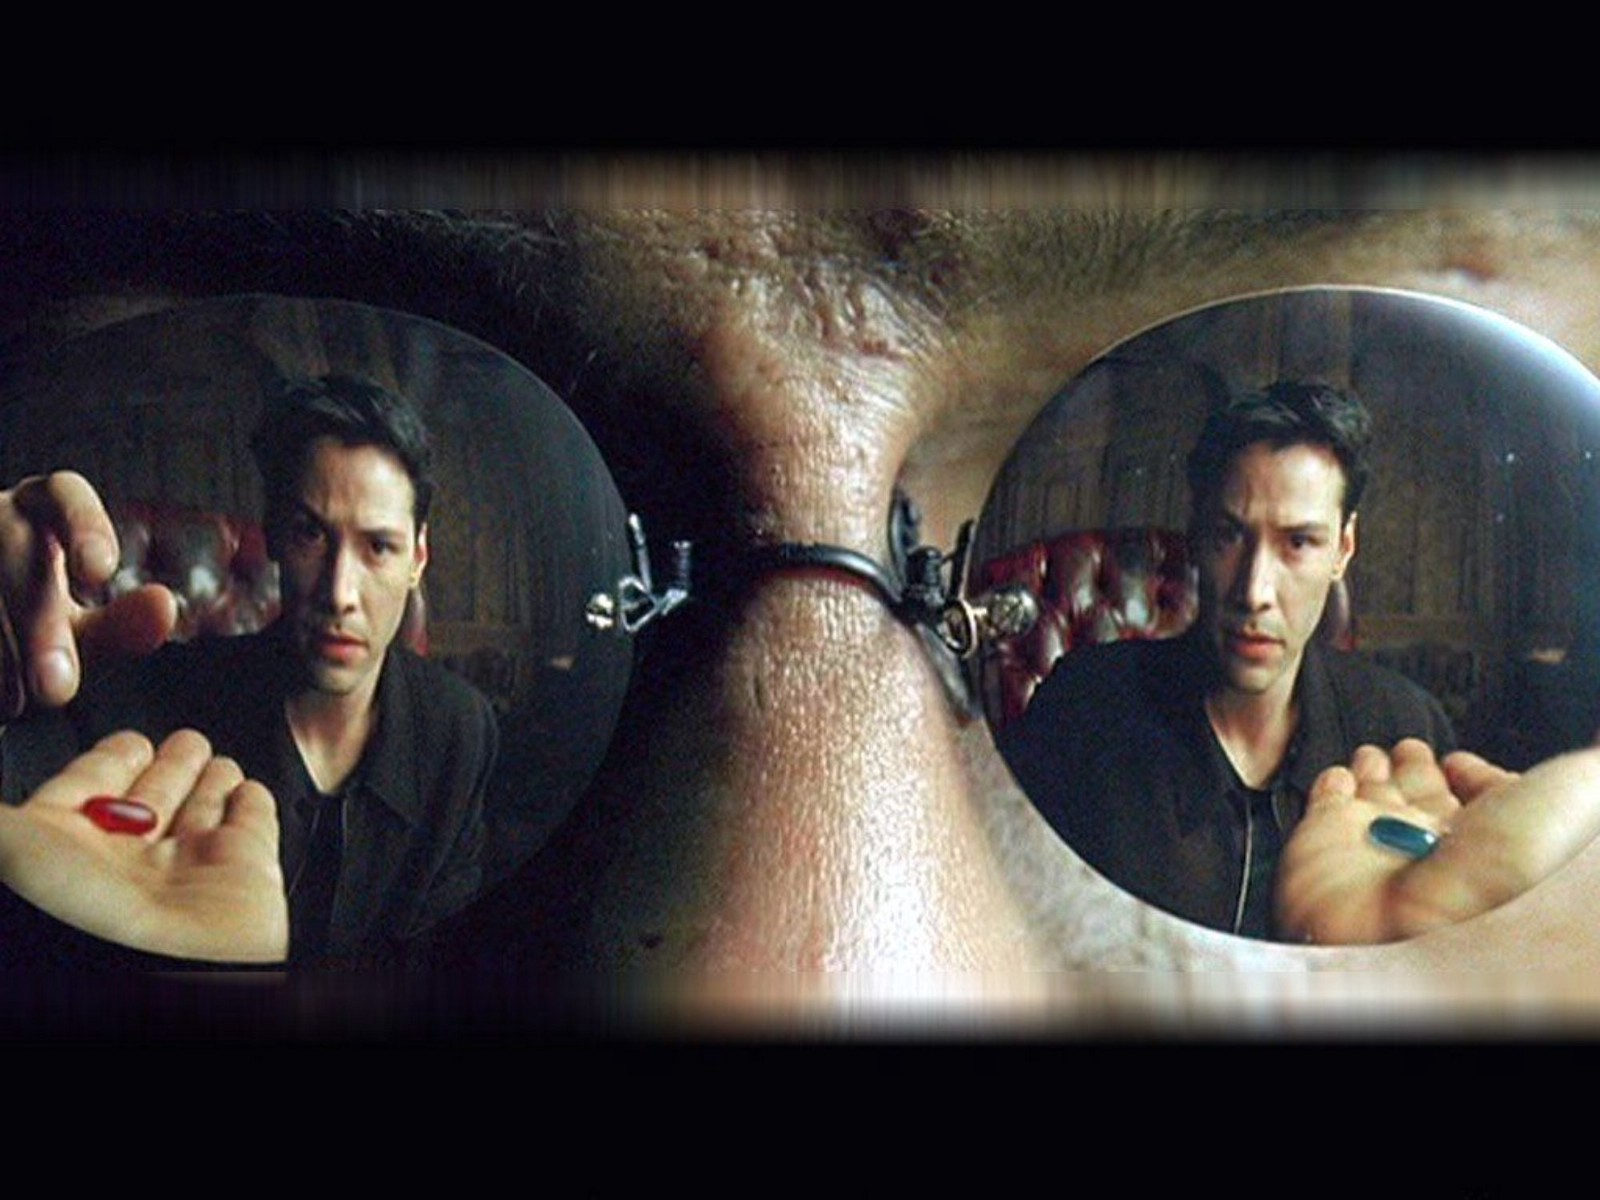 Choosing the red pill in The Matrix